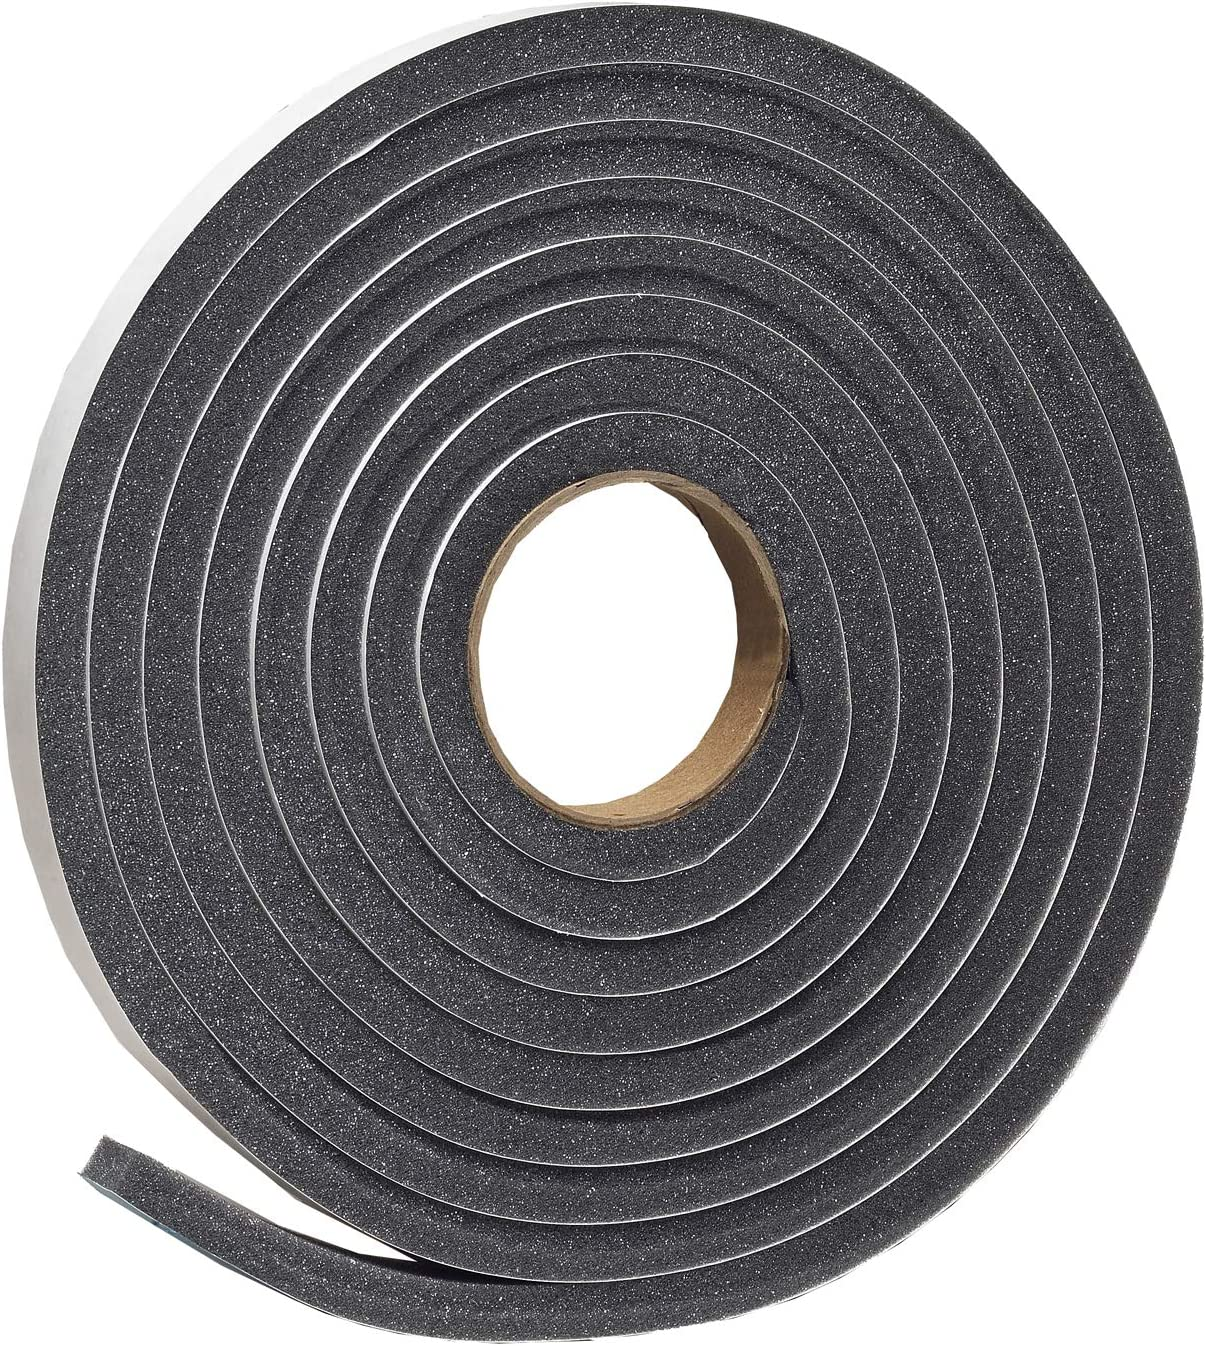 Frost King L346 Self-Adhesive Open Cell Tape Charcoal Polyfoam 17 Ft L X 3//4 in W 1//2 in T